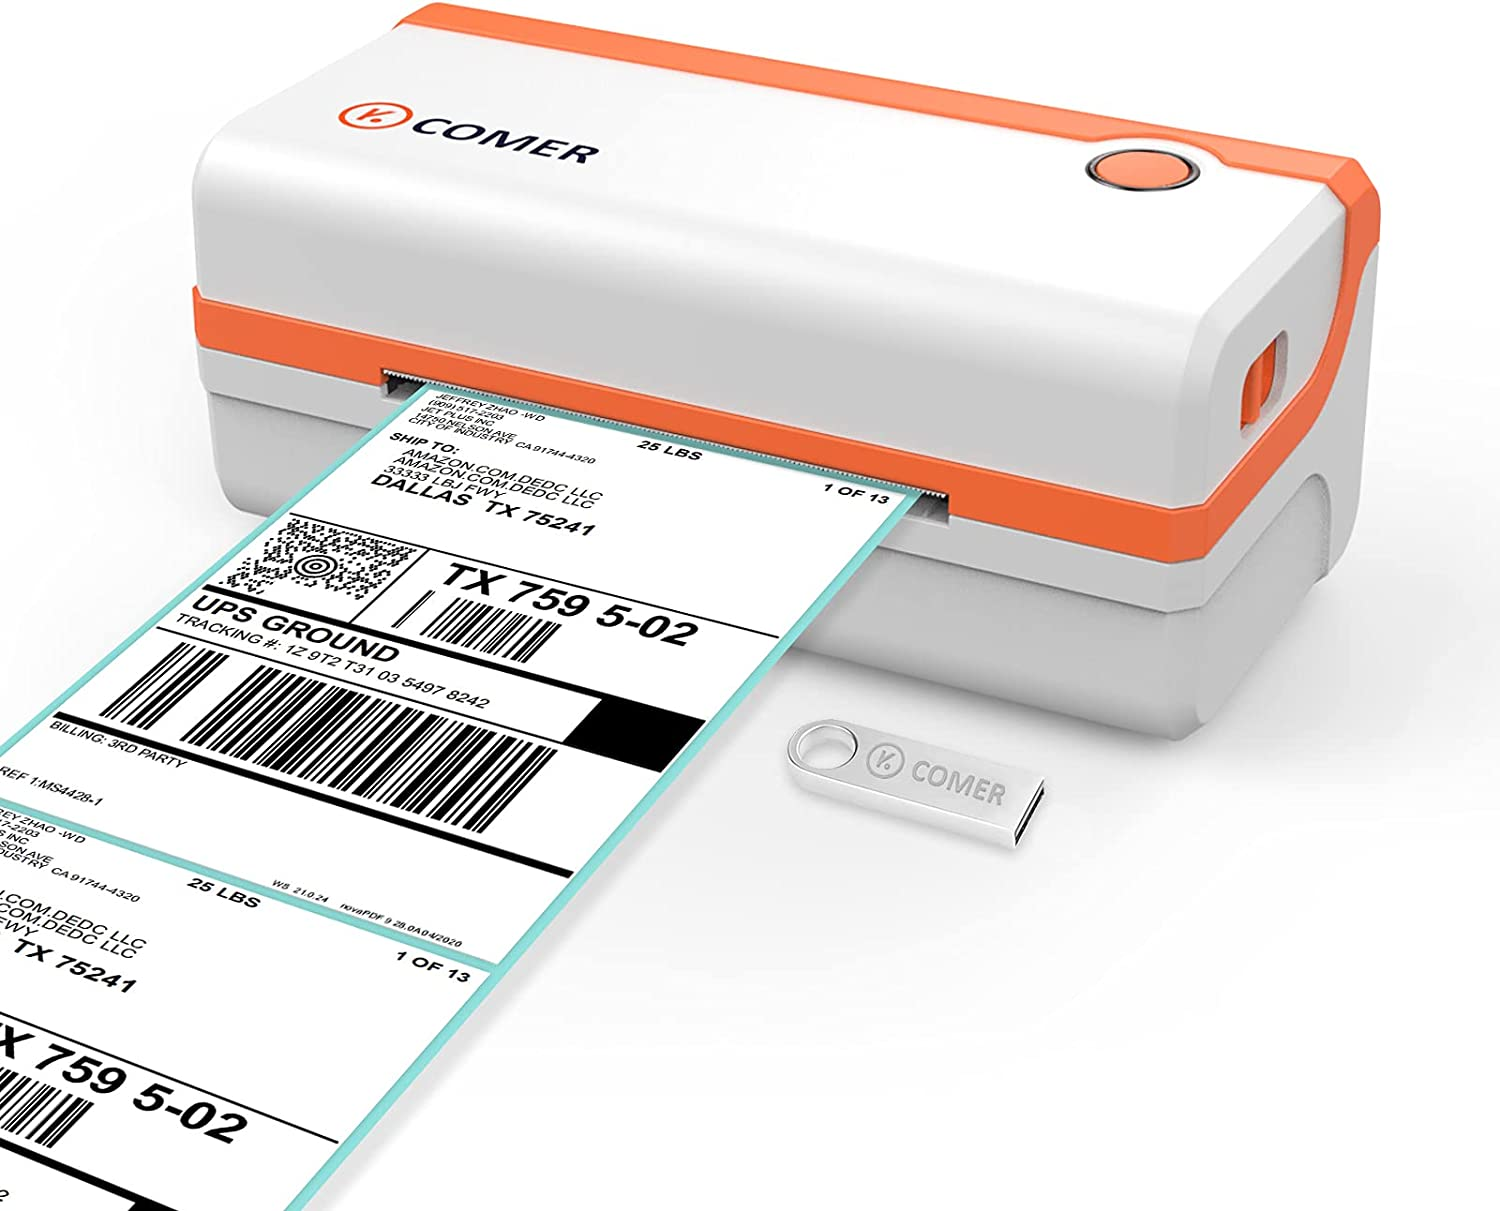 K Comer HD Thermal Shipping Label Printer 300DPI, Direct Thermal 4x6 High-Speed Label Printer, Compatible with Windows and Mac,Supports Multiple Platform Applications